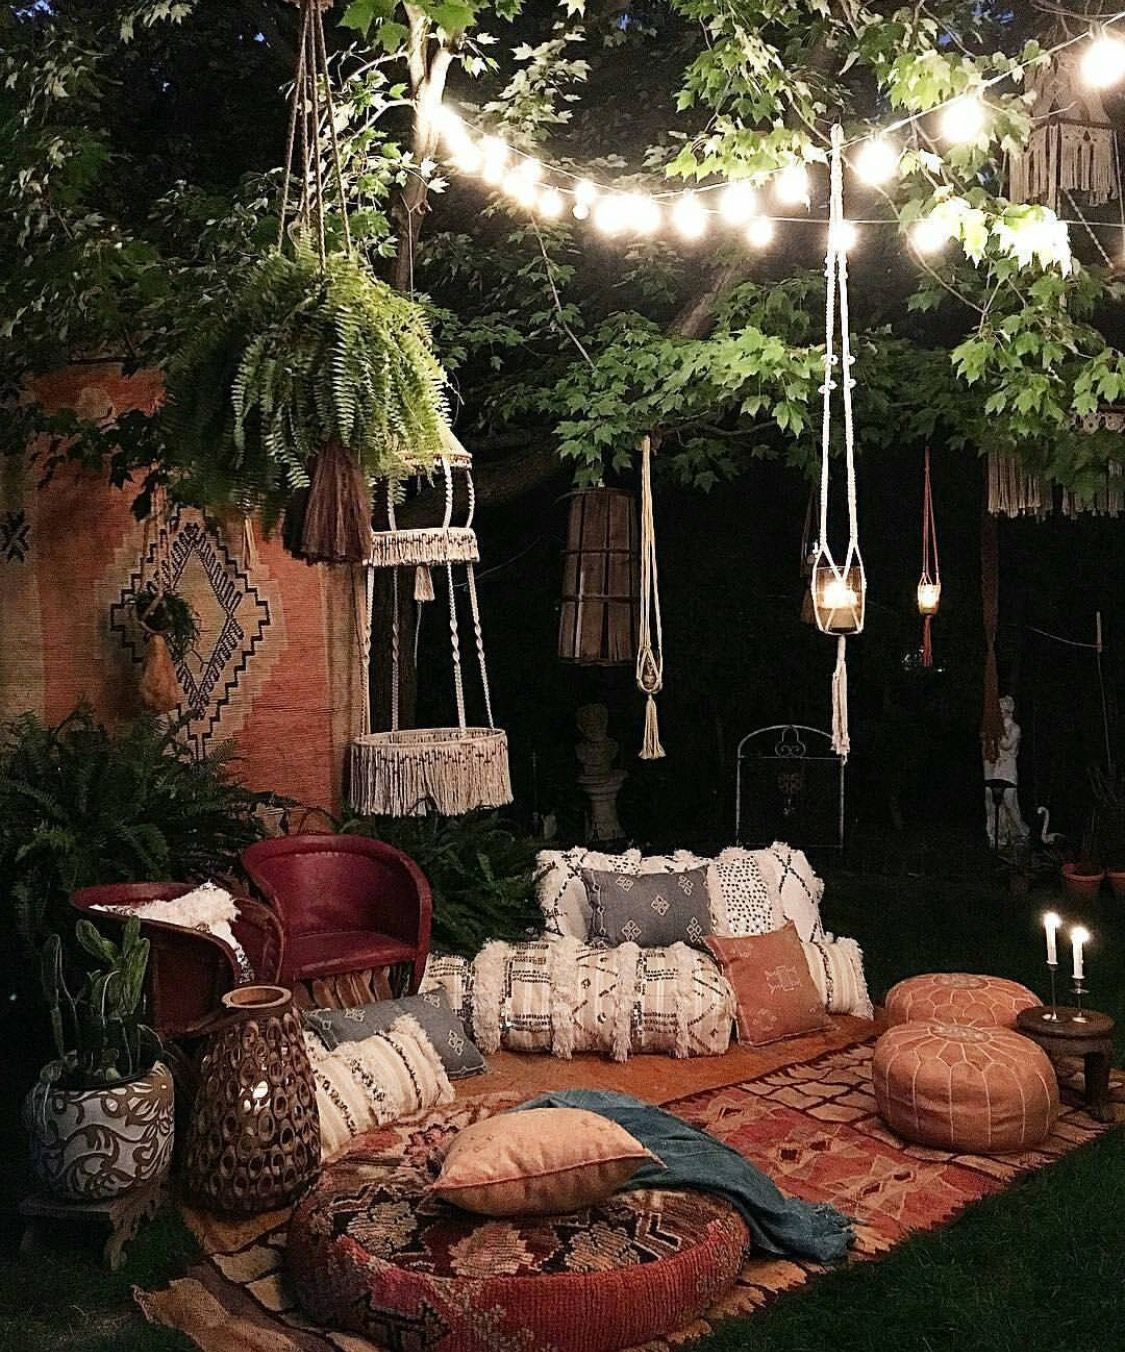 outdoor decor #outdoor #decor#nature VAPXBLP